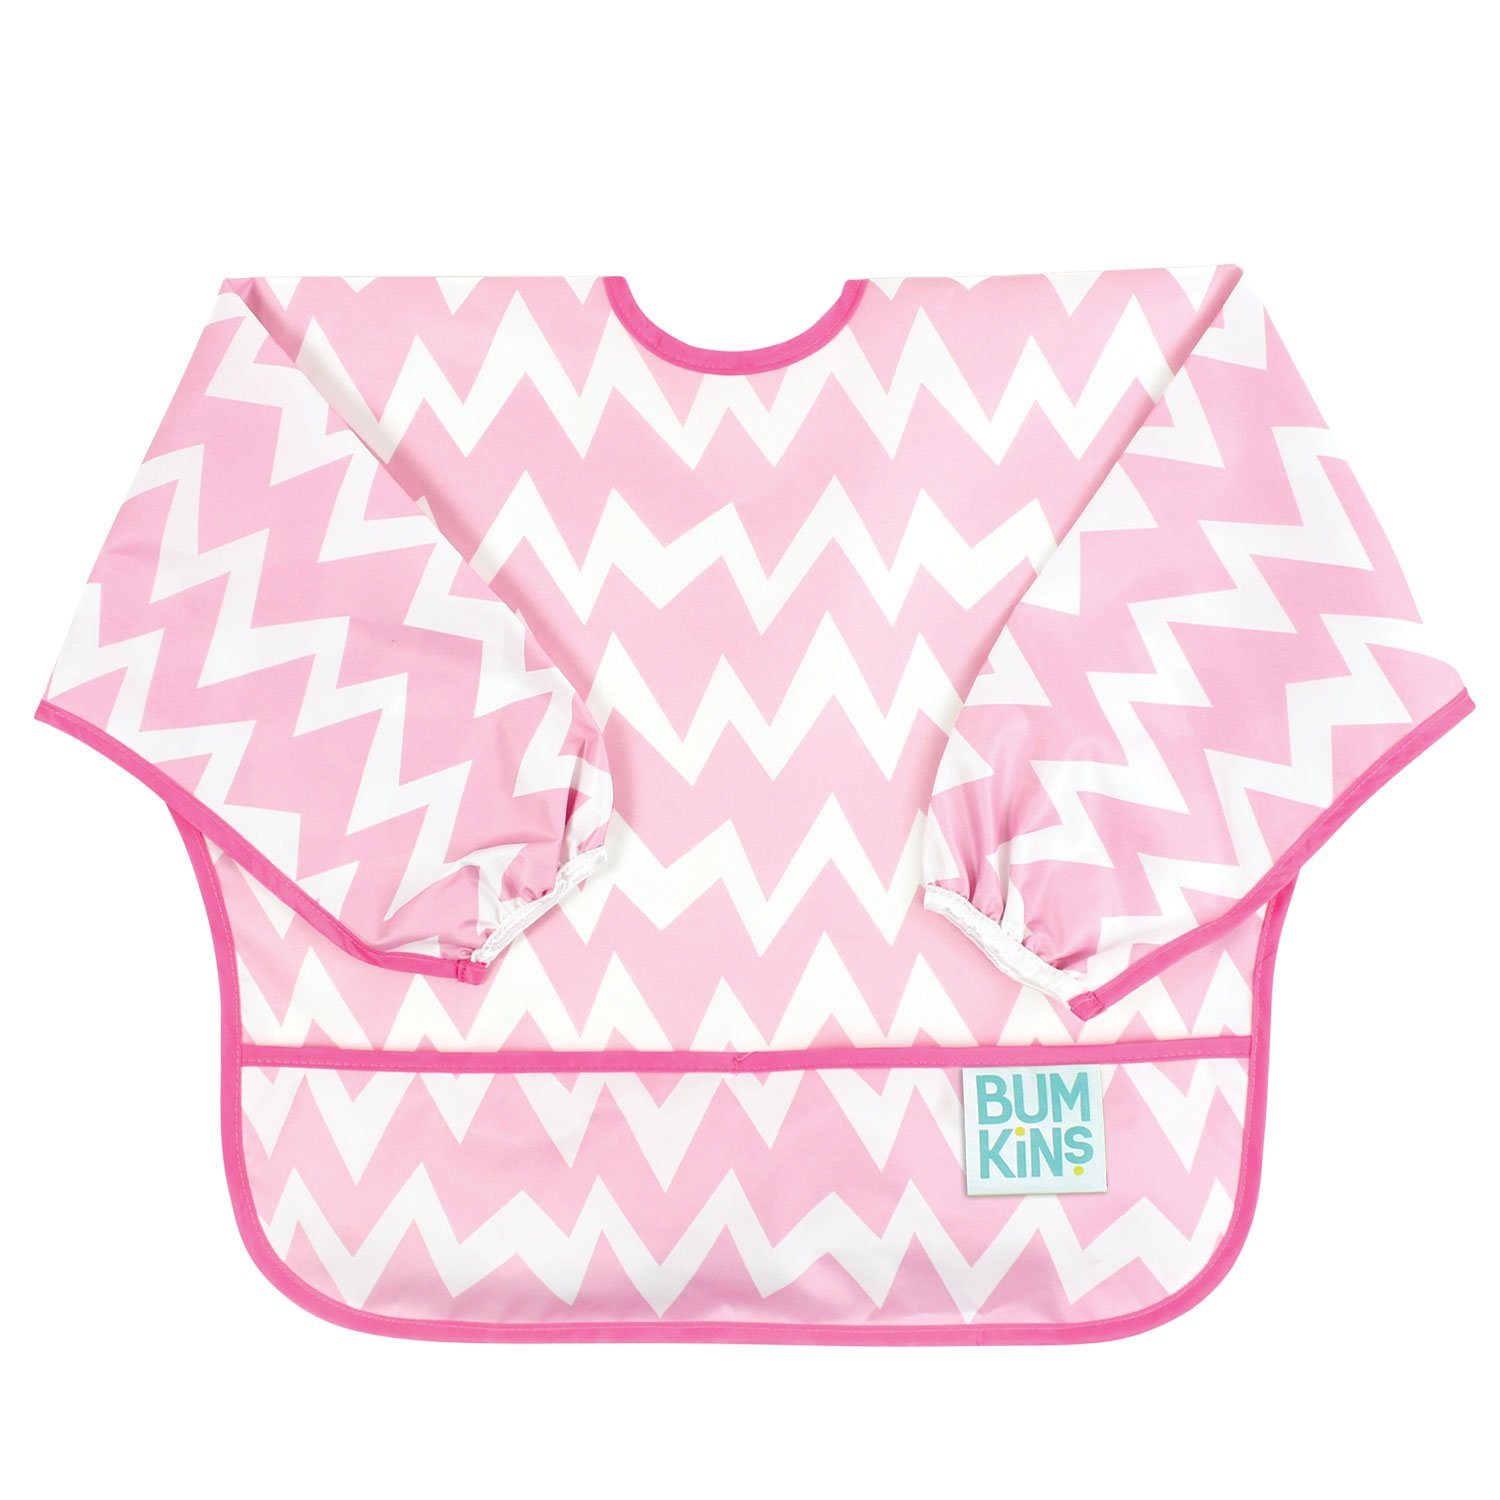 Bumkins Sleeved Bib Grey Chevron SU-501